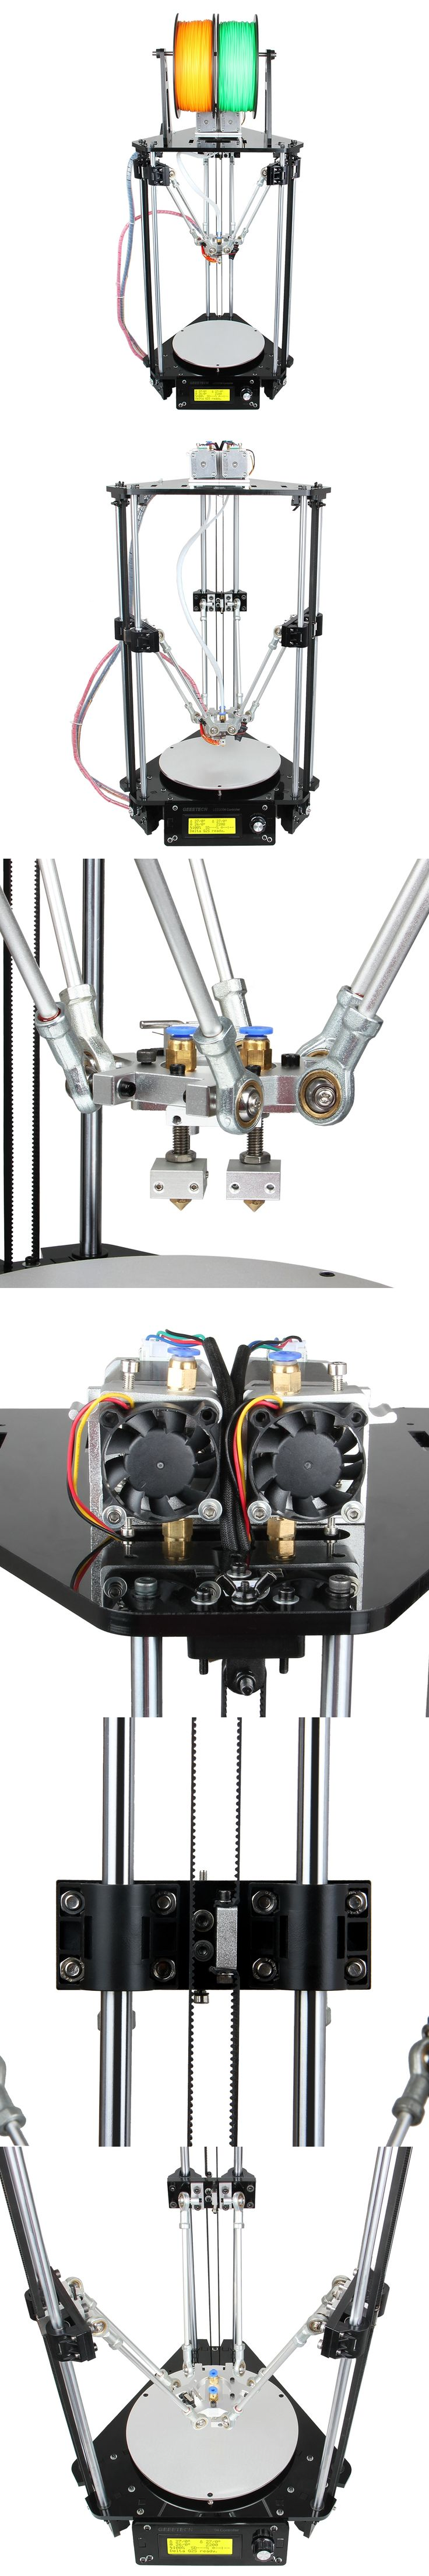 Geeetech Auto Leveling 3D Printer Dual Extruder Delta Rostock Mini G2s New Upgraded DIY Printing Kits